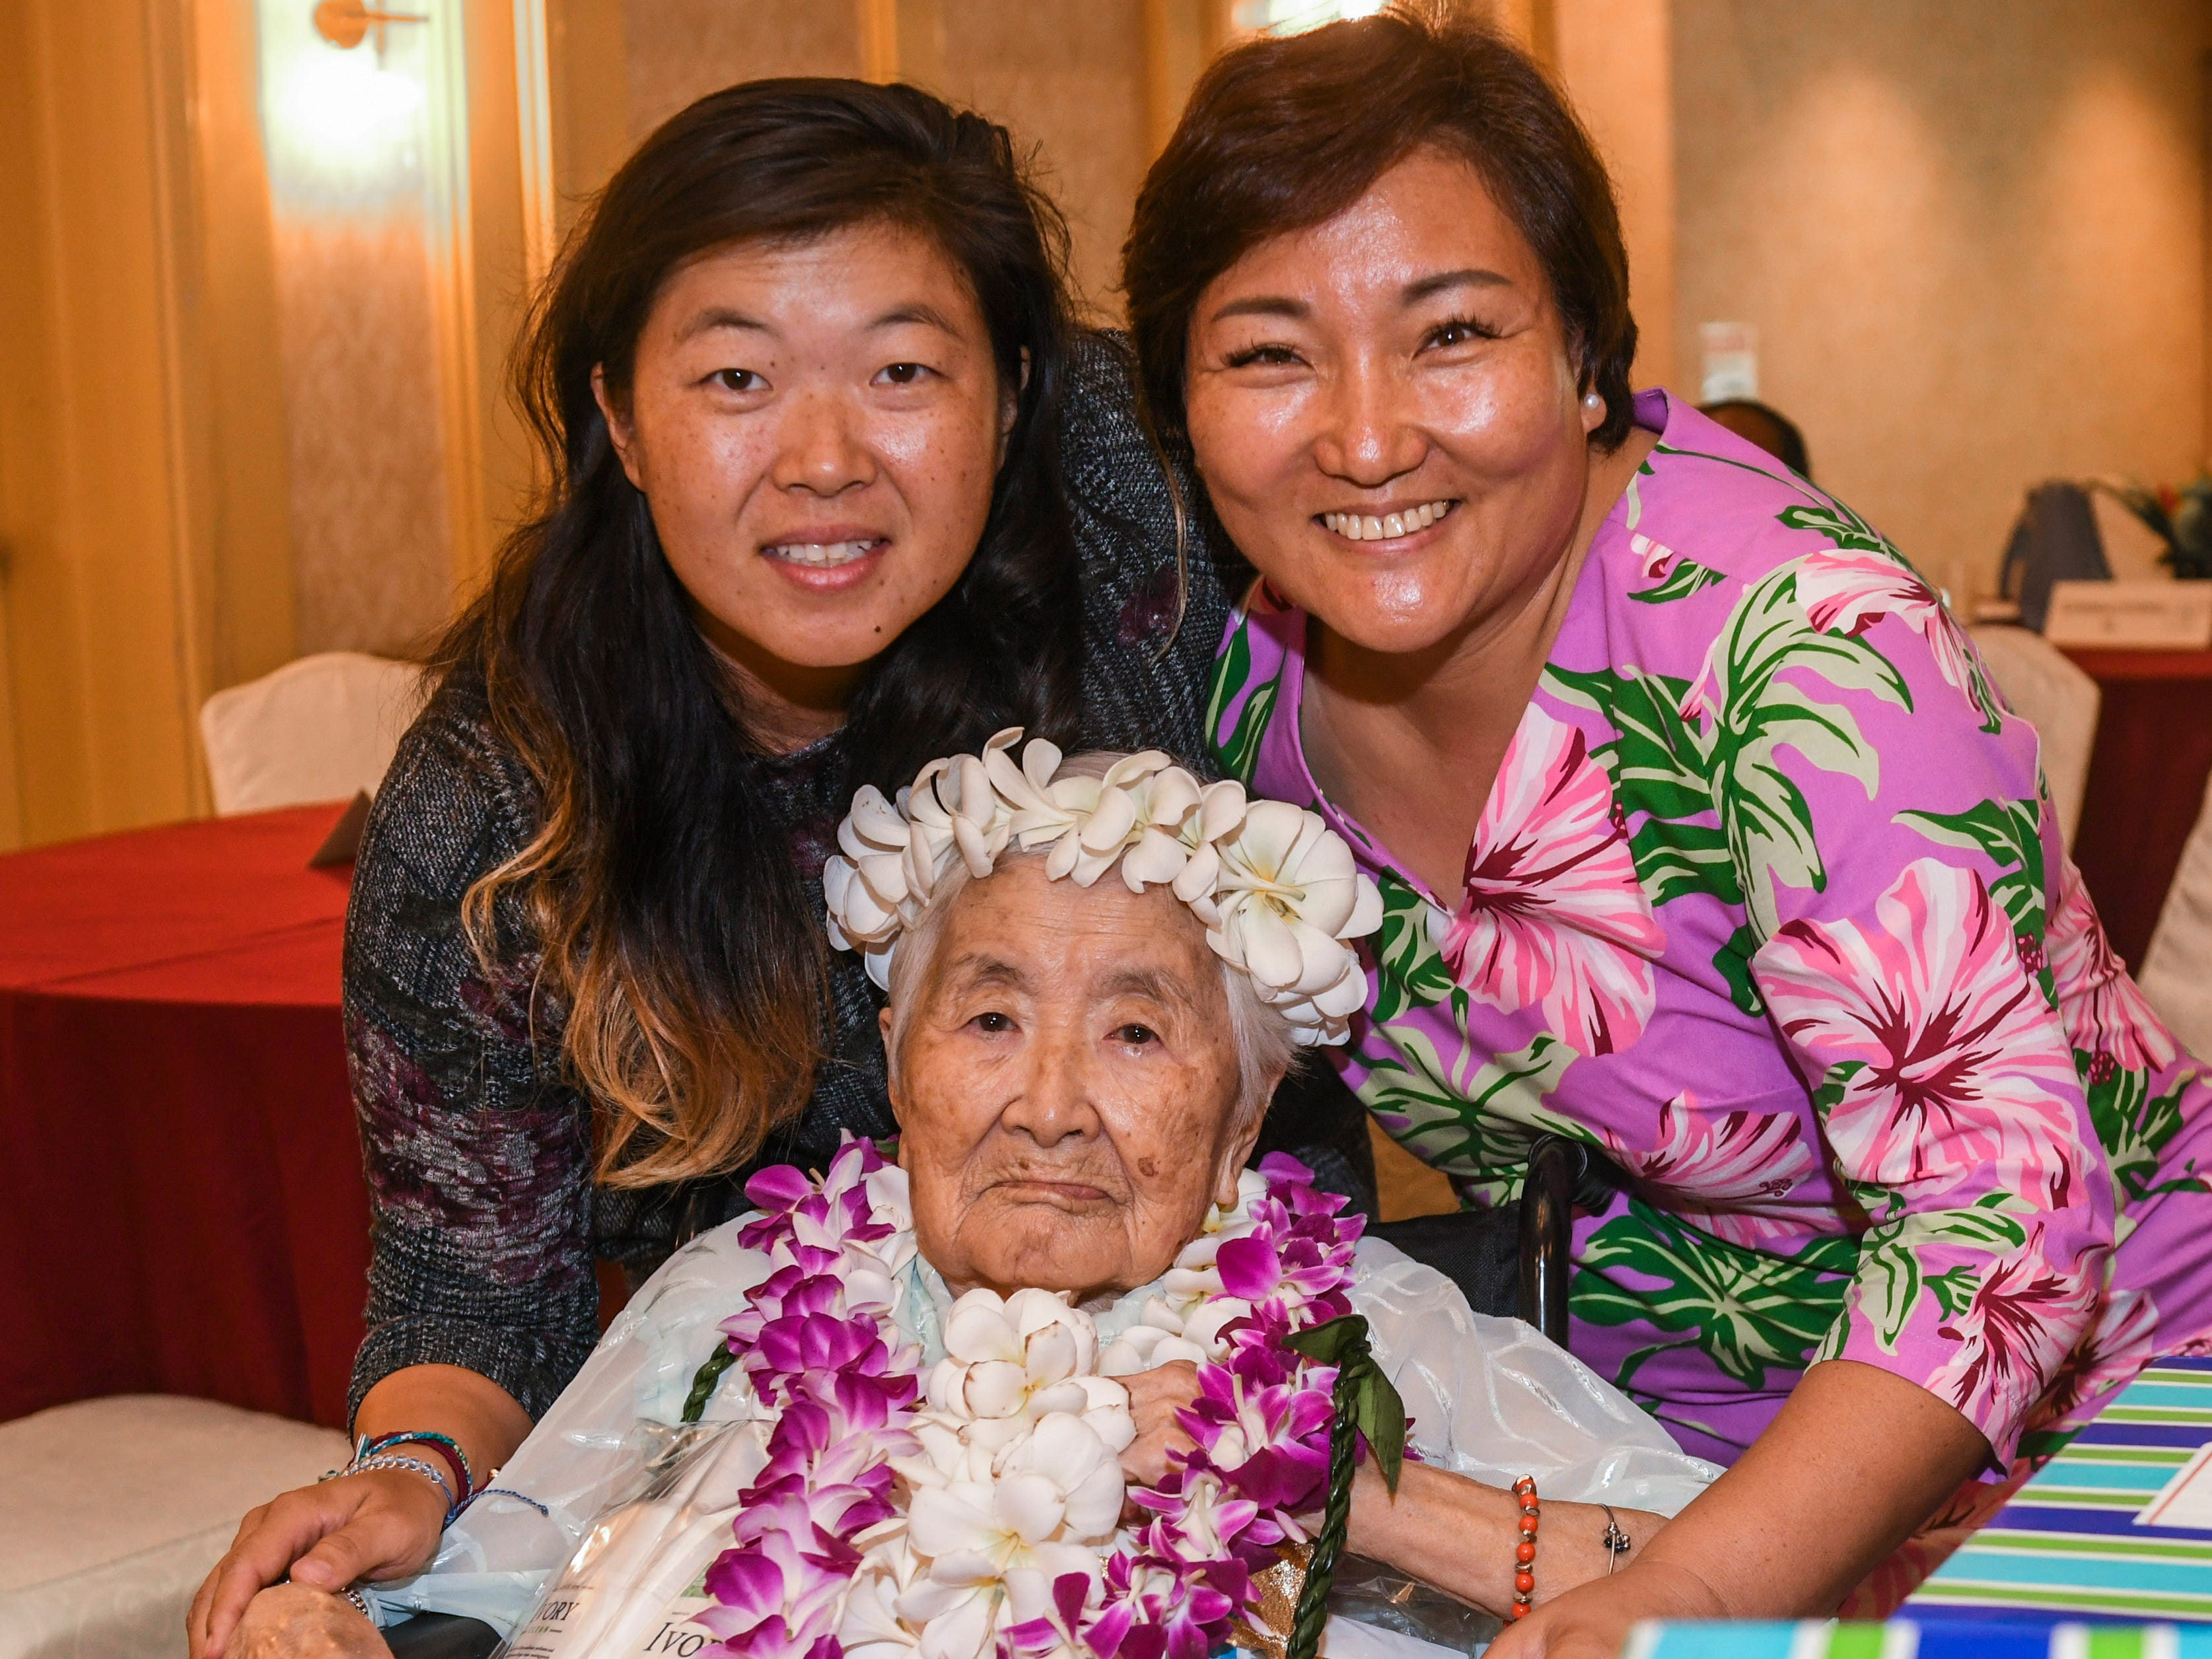 Hae Im Yu Shim, 102, seated, gathers with her grandaughter, Sue Lee, left, and Ina Lee, East Asia Tae Kwon Do Federation of Guam general secretary, during the 2019 Centenarian Celebration, hosted by the Department of Public Health and Social Services, held in conjunction with Senior Citizens Month, at the Pacific Star Resort & Spa in Tumon on Thursday, May 9, 2019.